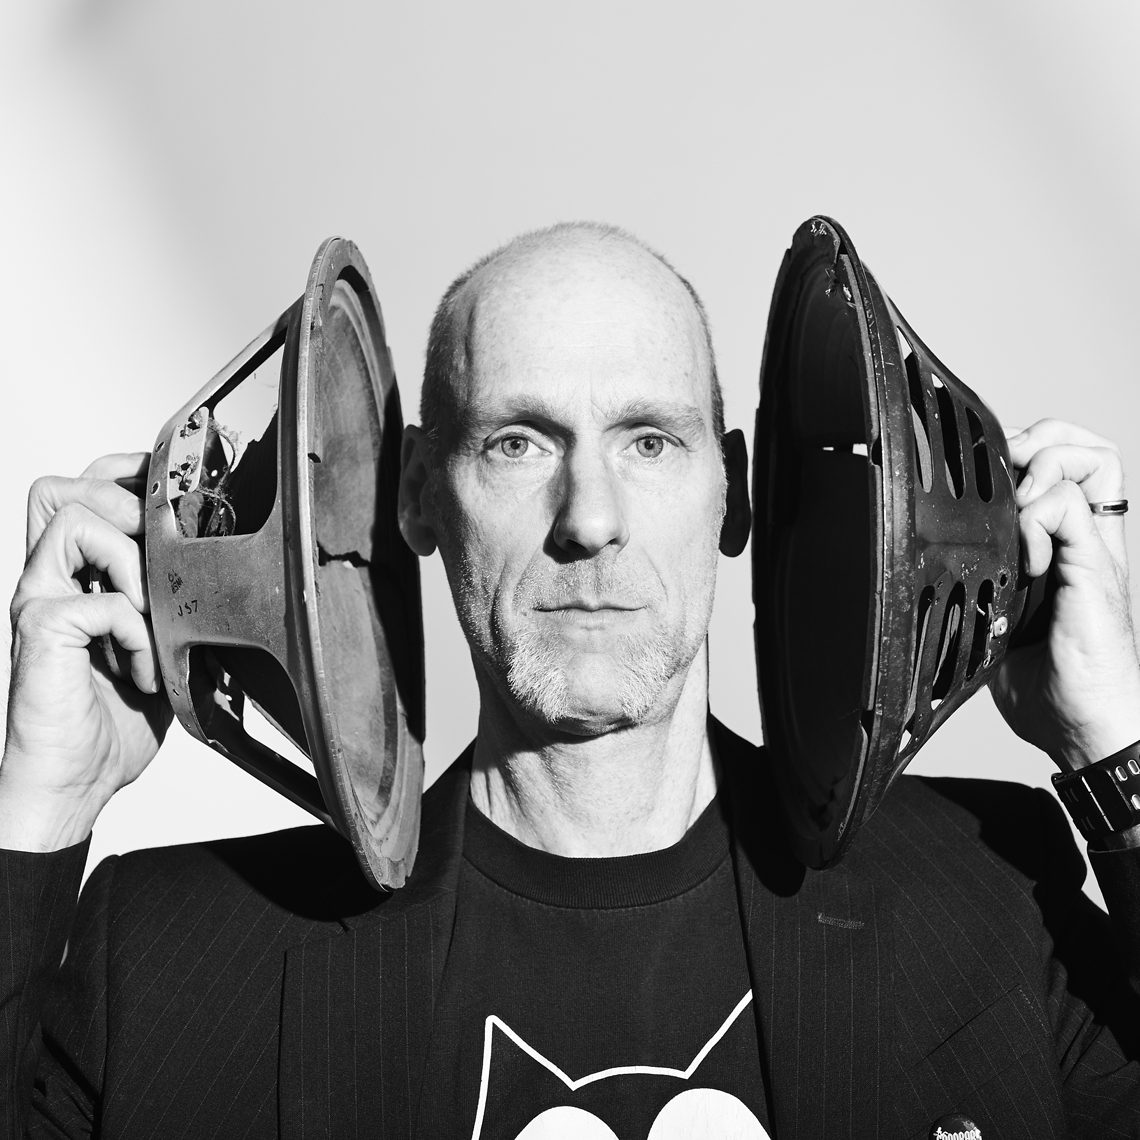 Black and White portrait of bald white man holding speakers over his ears